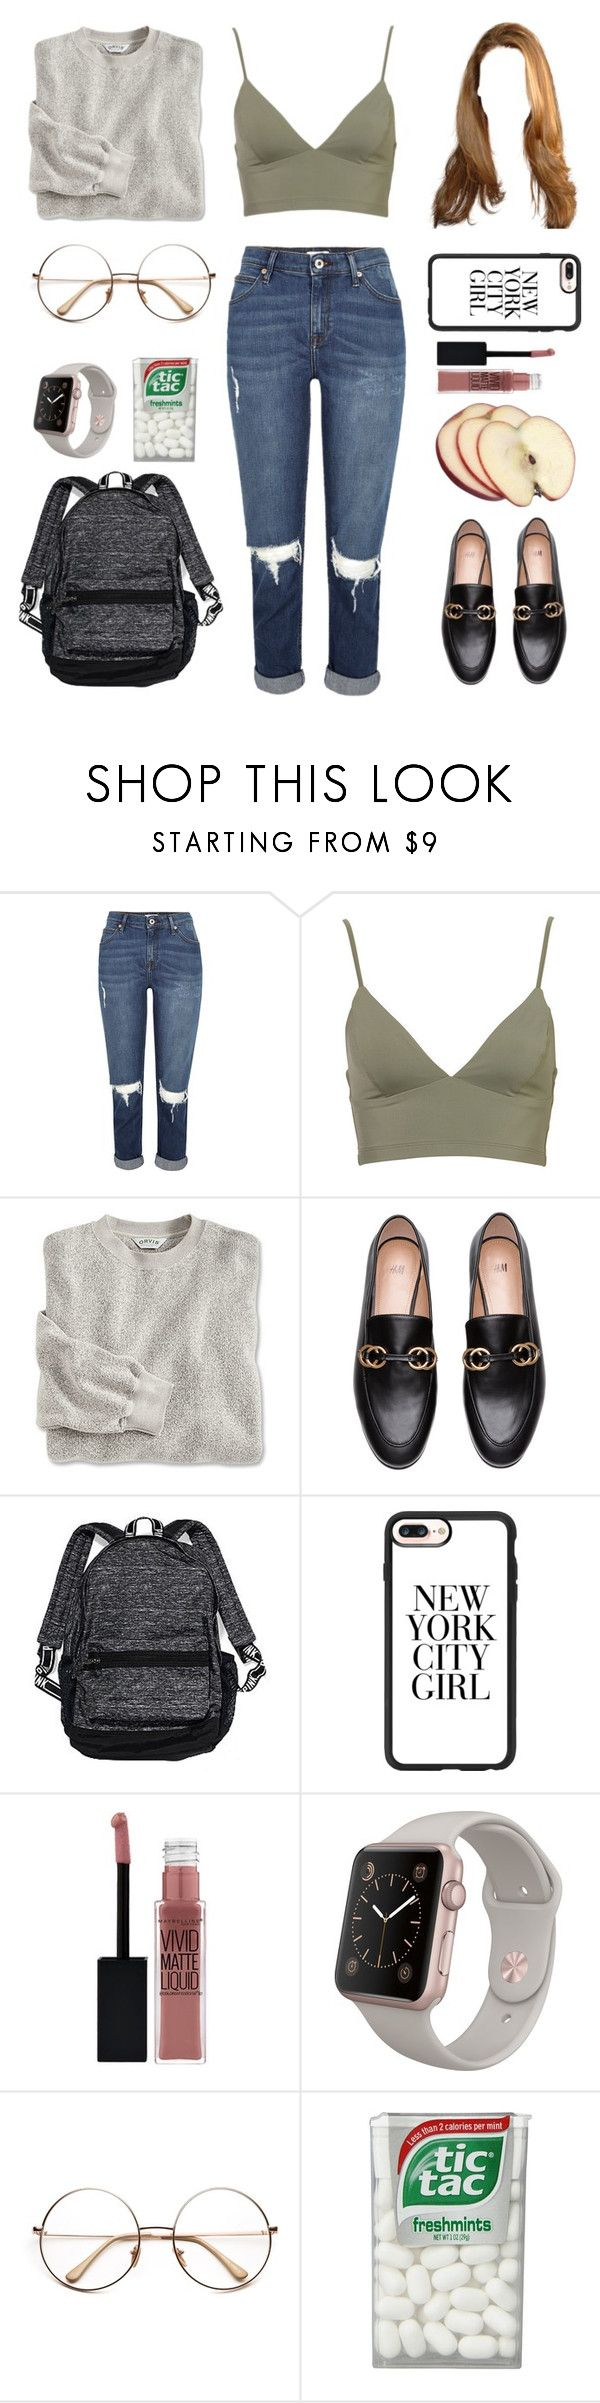 """""""Army Green ^.^"""" by summertastic101 ❤ liked on Polyvore featuring River Island, Victoria's Secret, Casetify, Maybelline, GetTheLook, college, grunge, artexpression and polyvoreOOTD"""